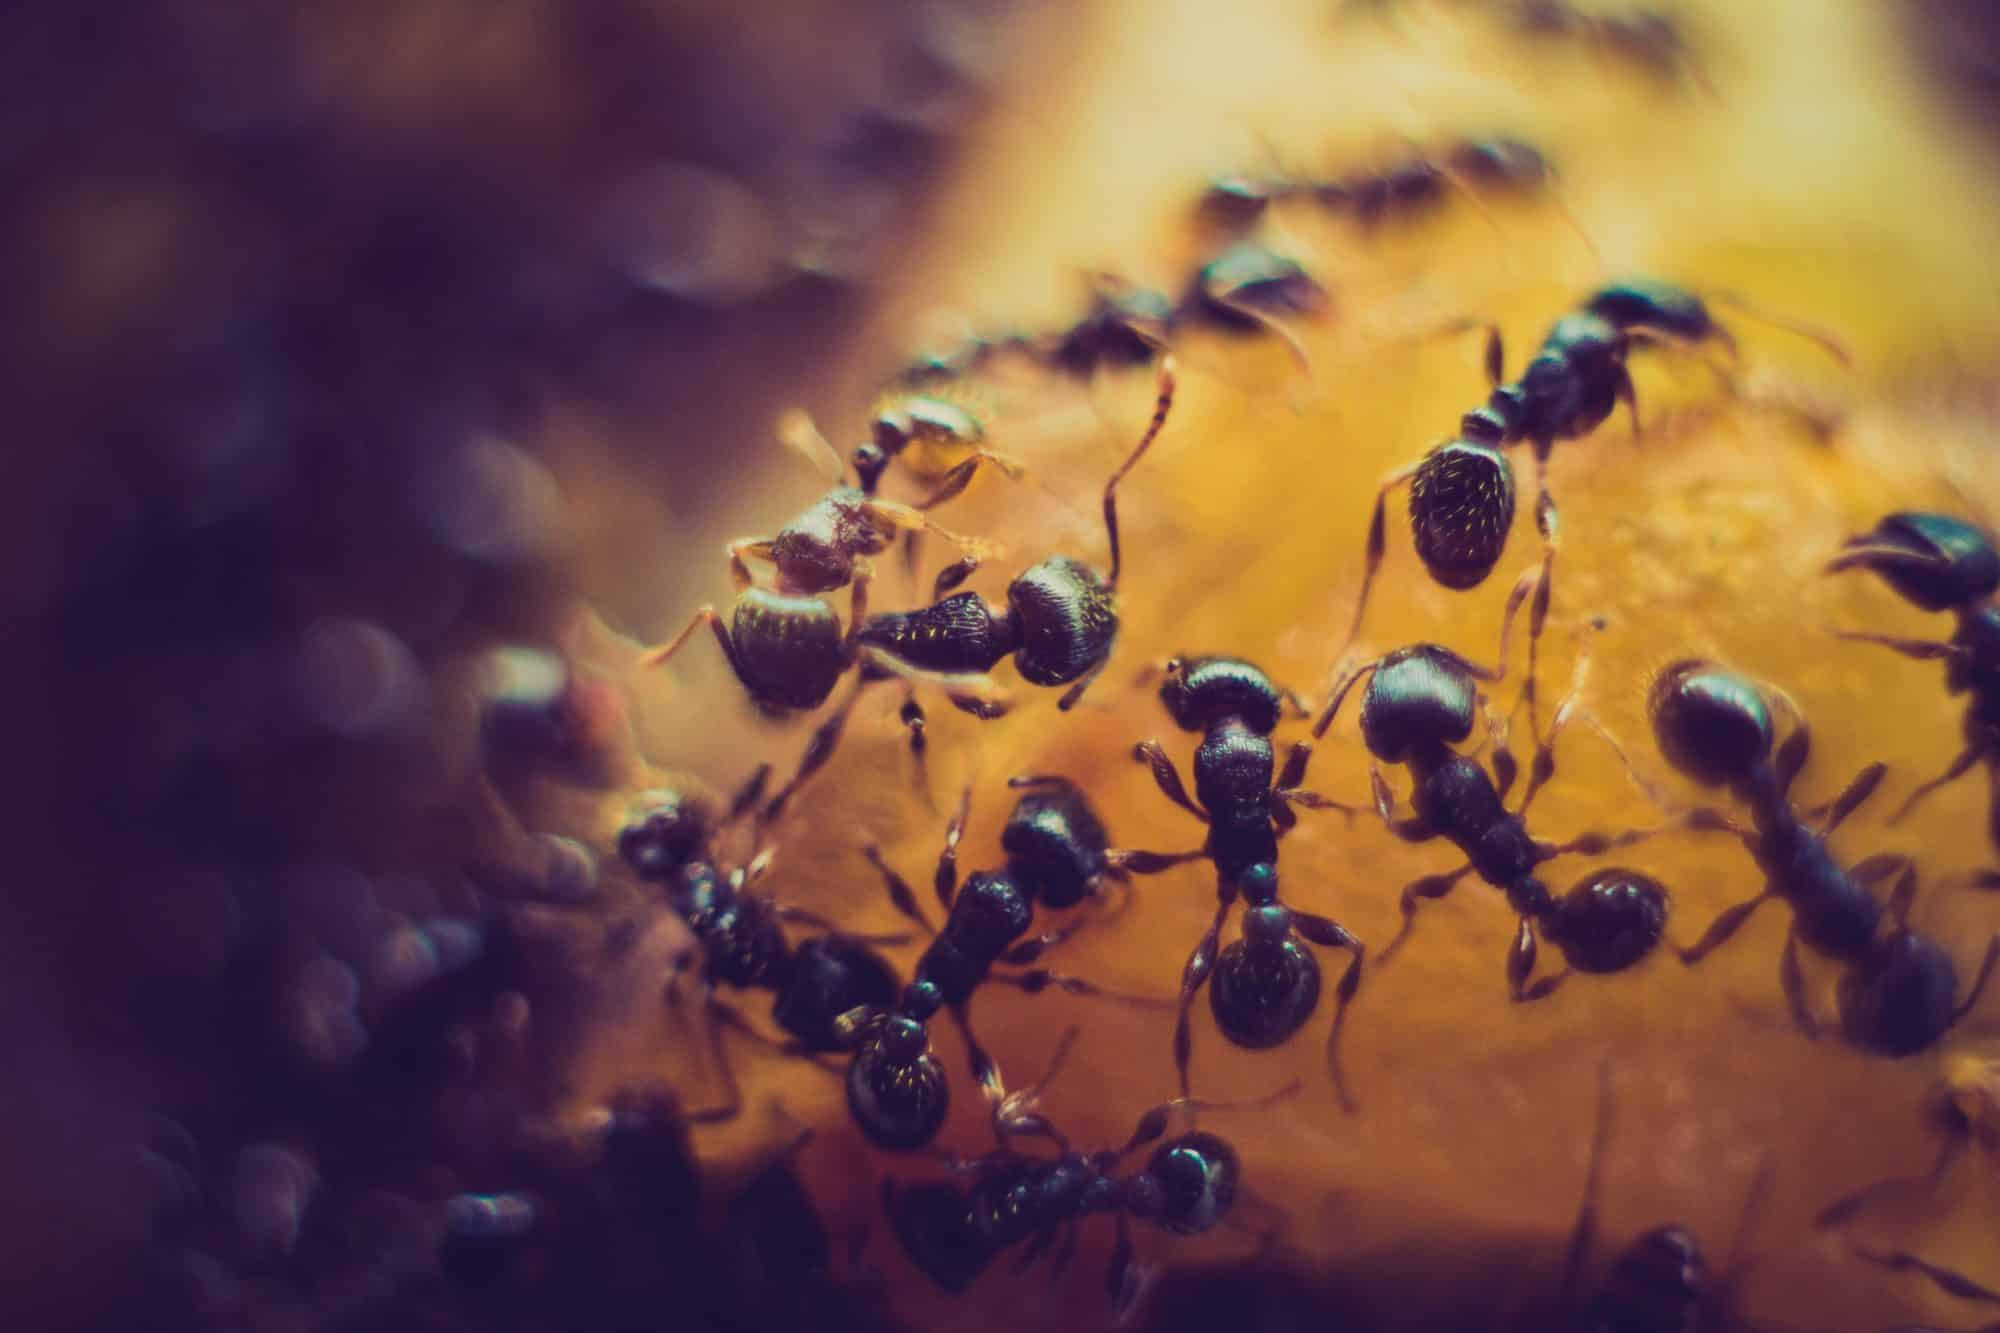 Photo of ants from Unsplash